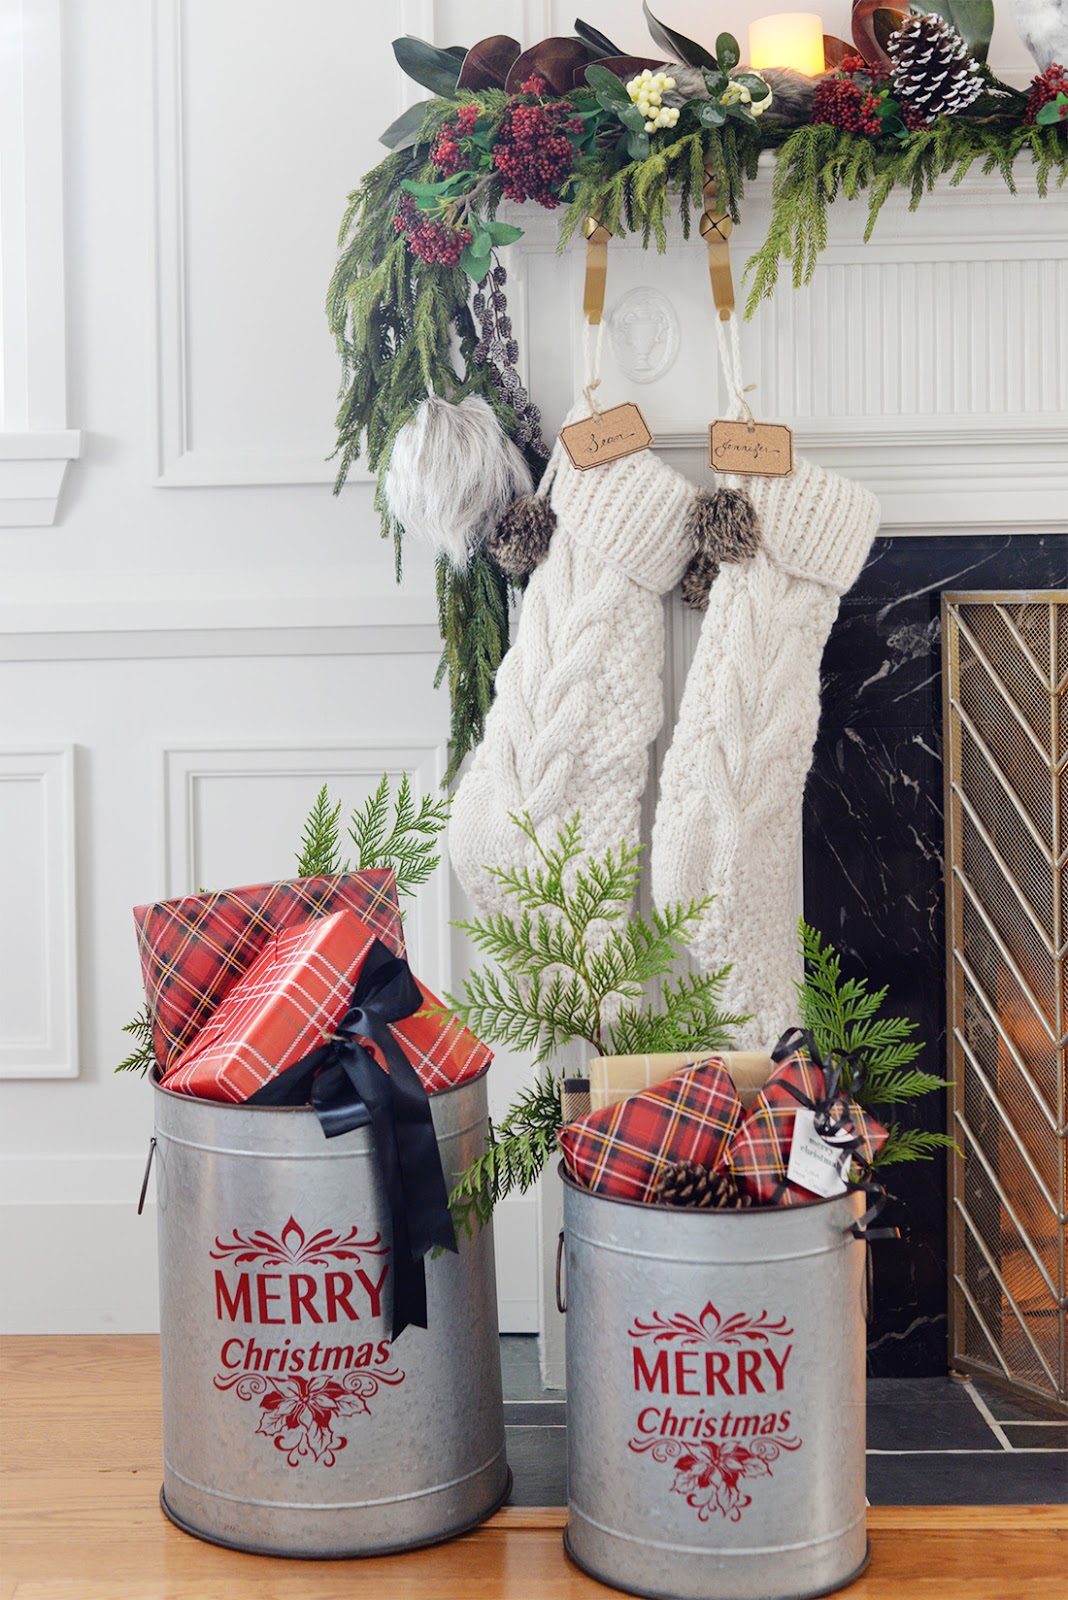 gifts in metal bucket, gifts displayed in galvanized bucket